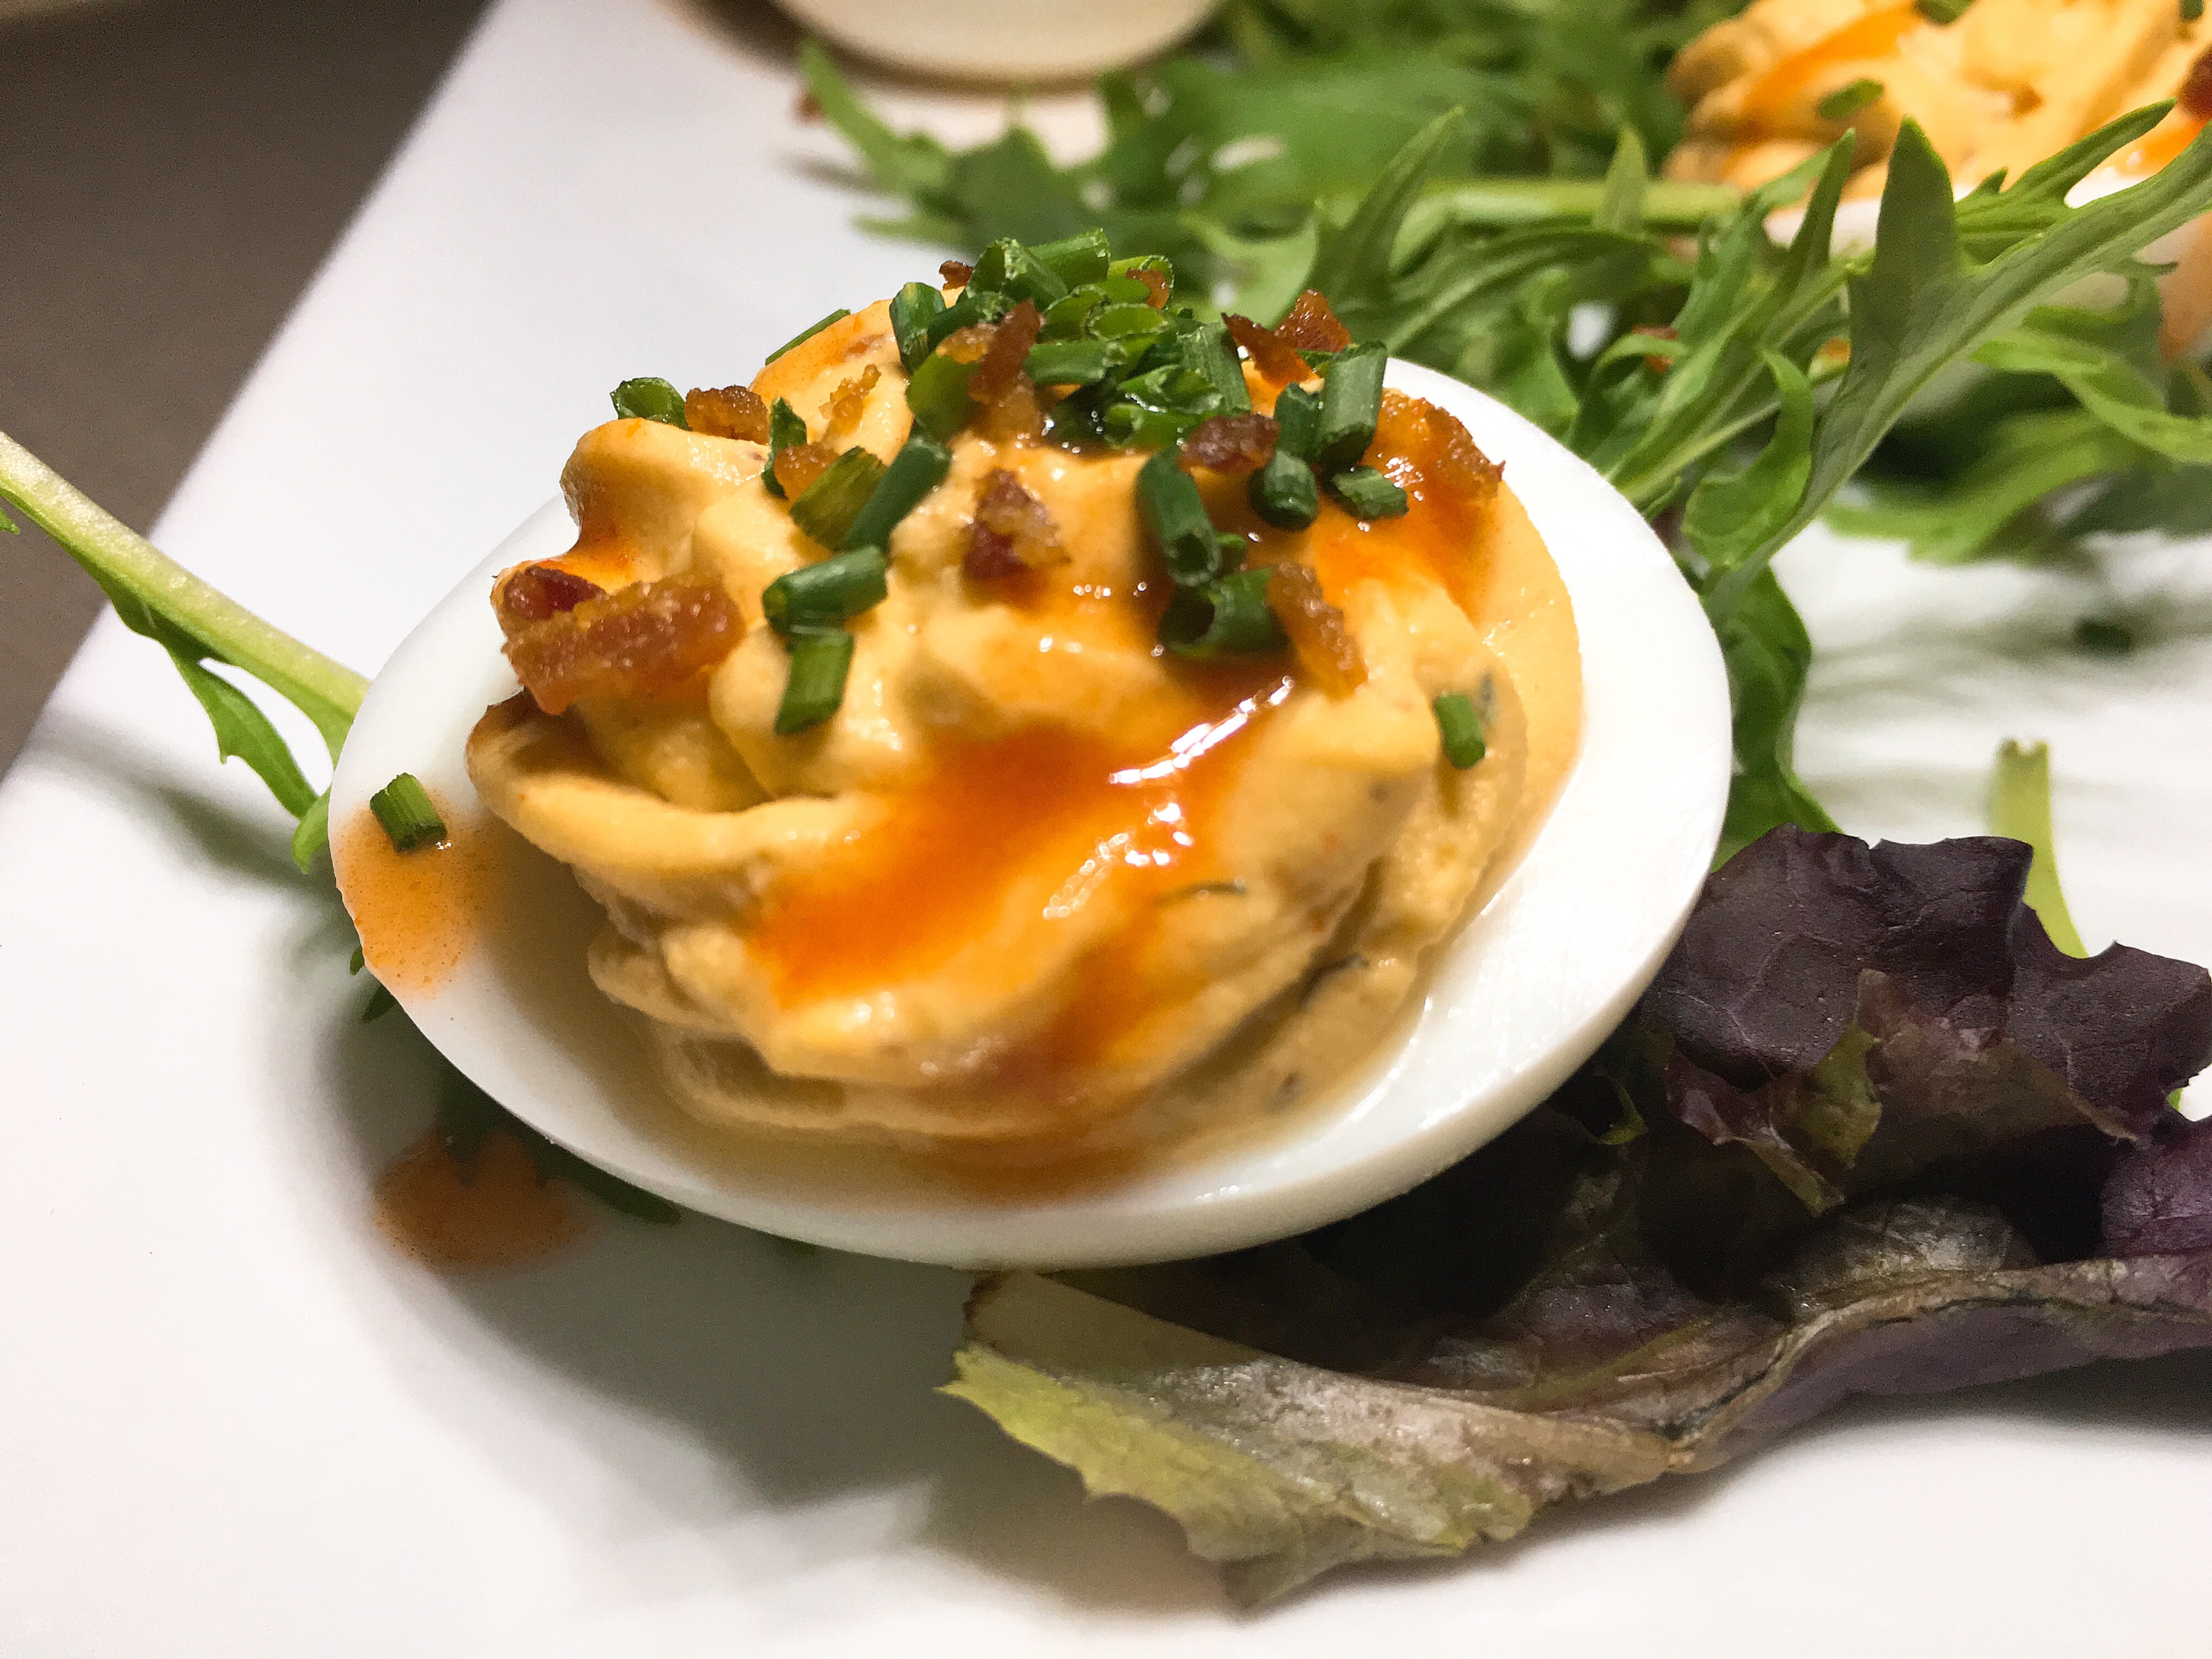 Lounge Here - Deviled Eggs - East Dallas - The GG List - Girls on Food Blog